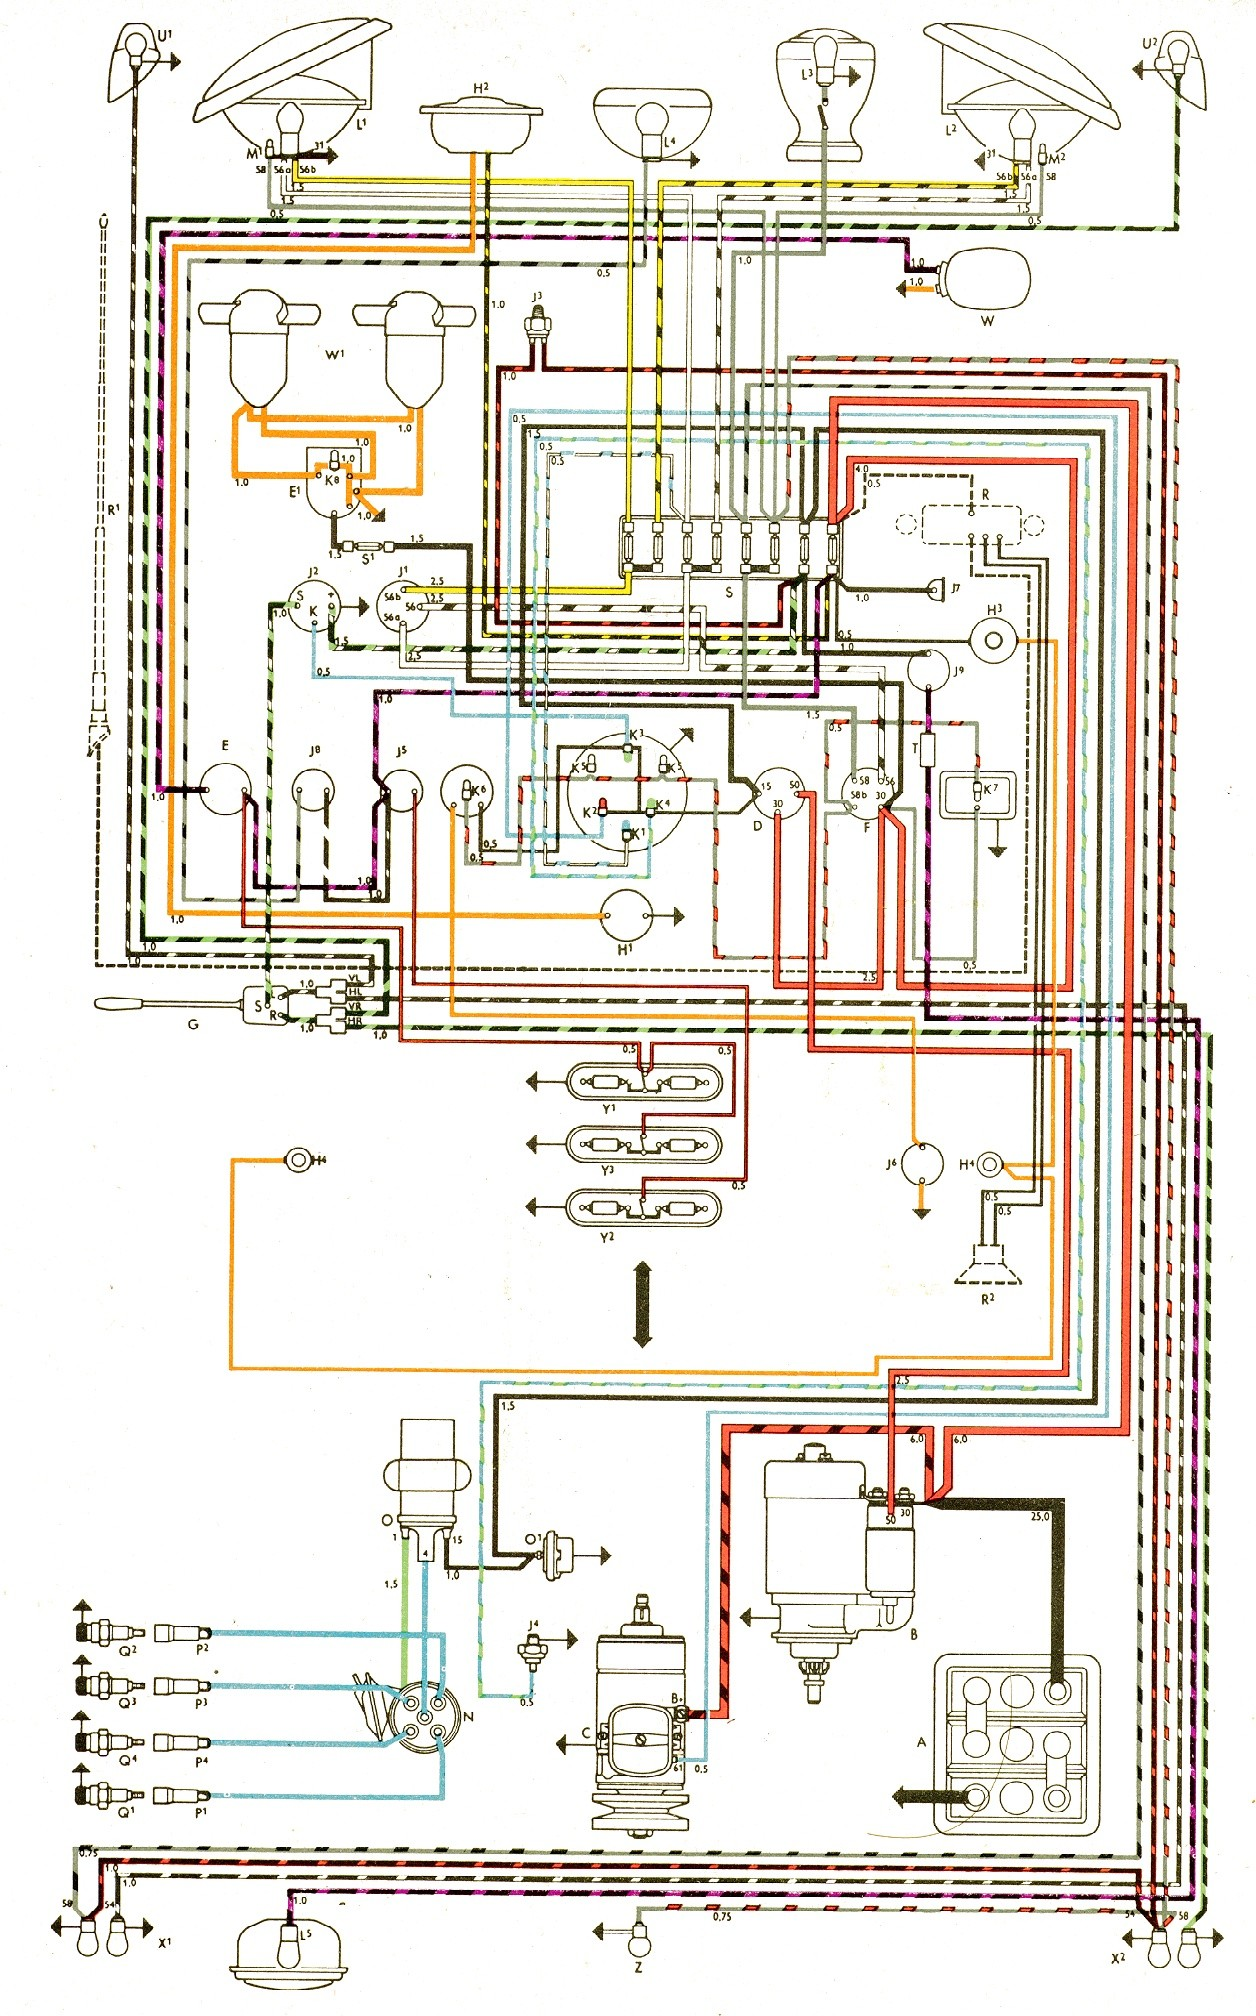 Bus Engine Diagram Vintagebus Vw Bus and Other Wiring Diagrams Of Bus Engine Diagram